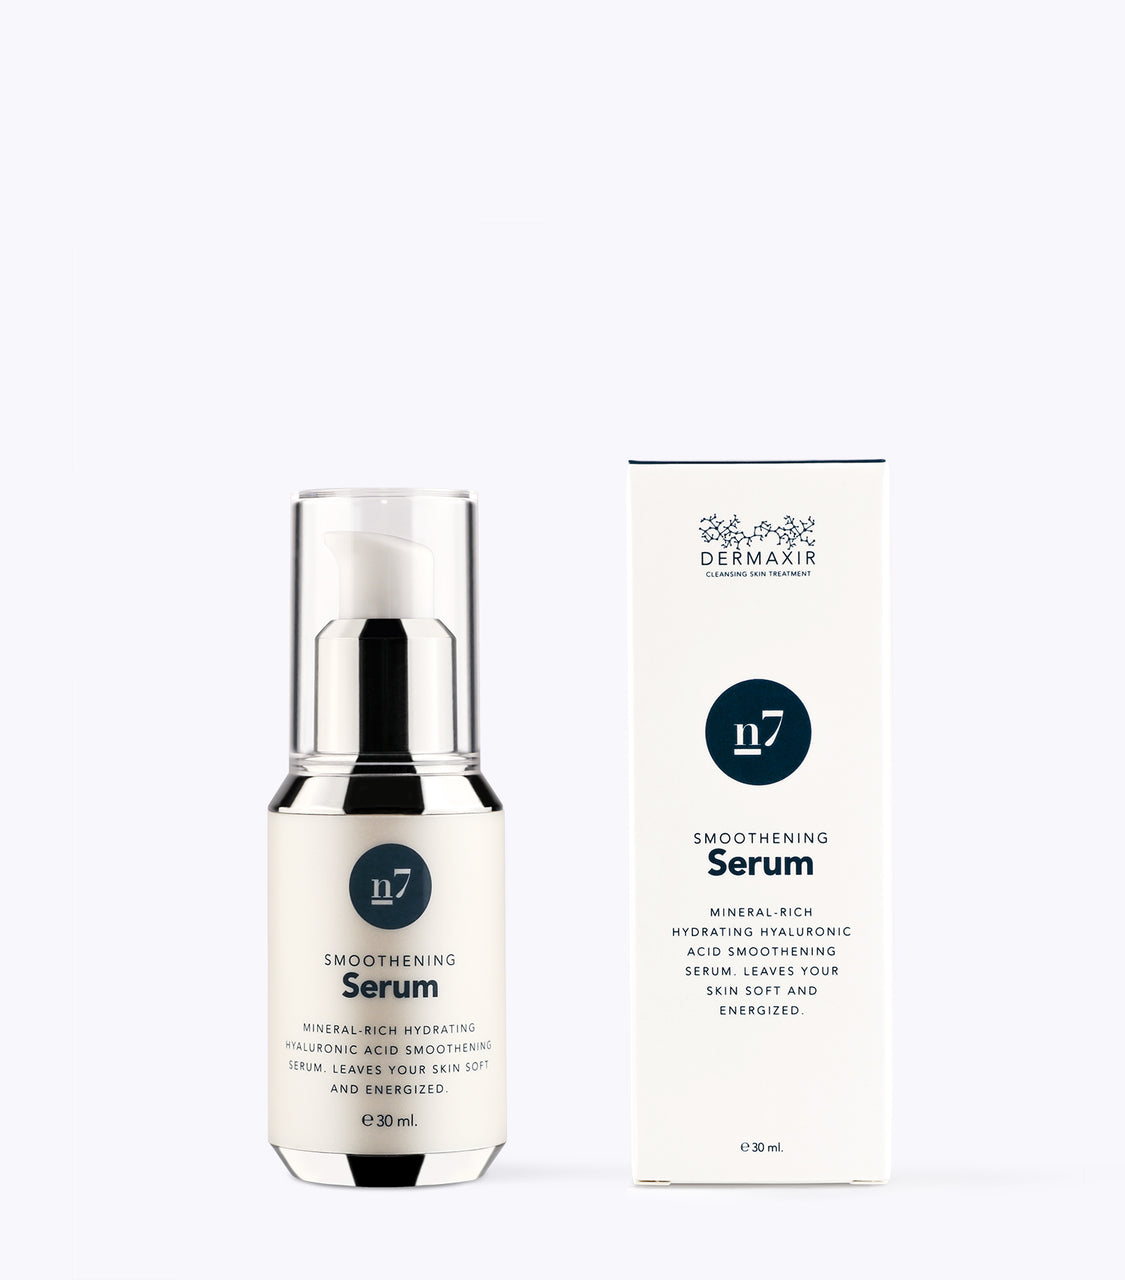 NEW – n7 Smoothening Serum